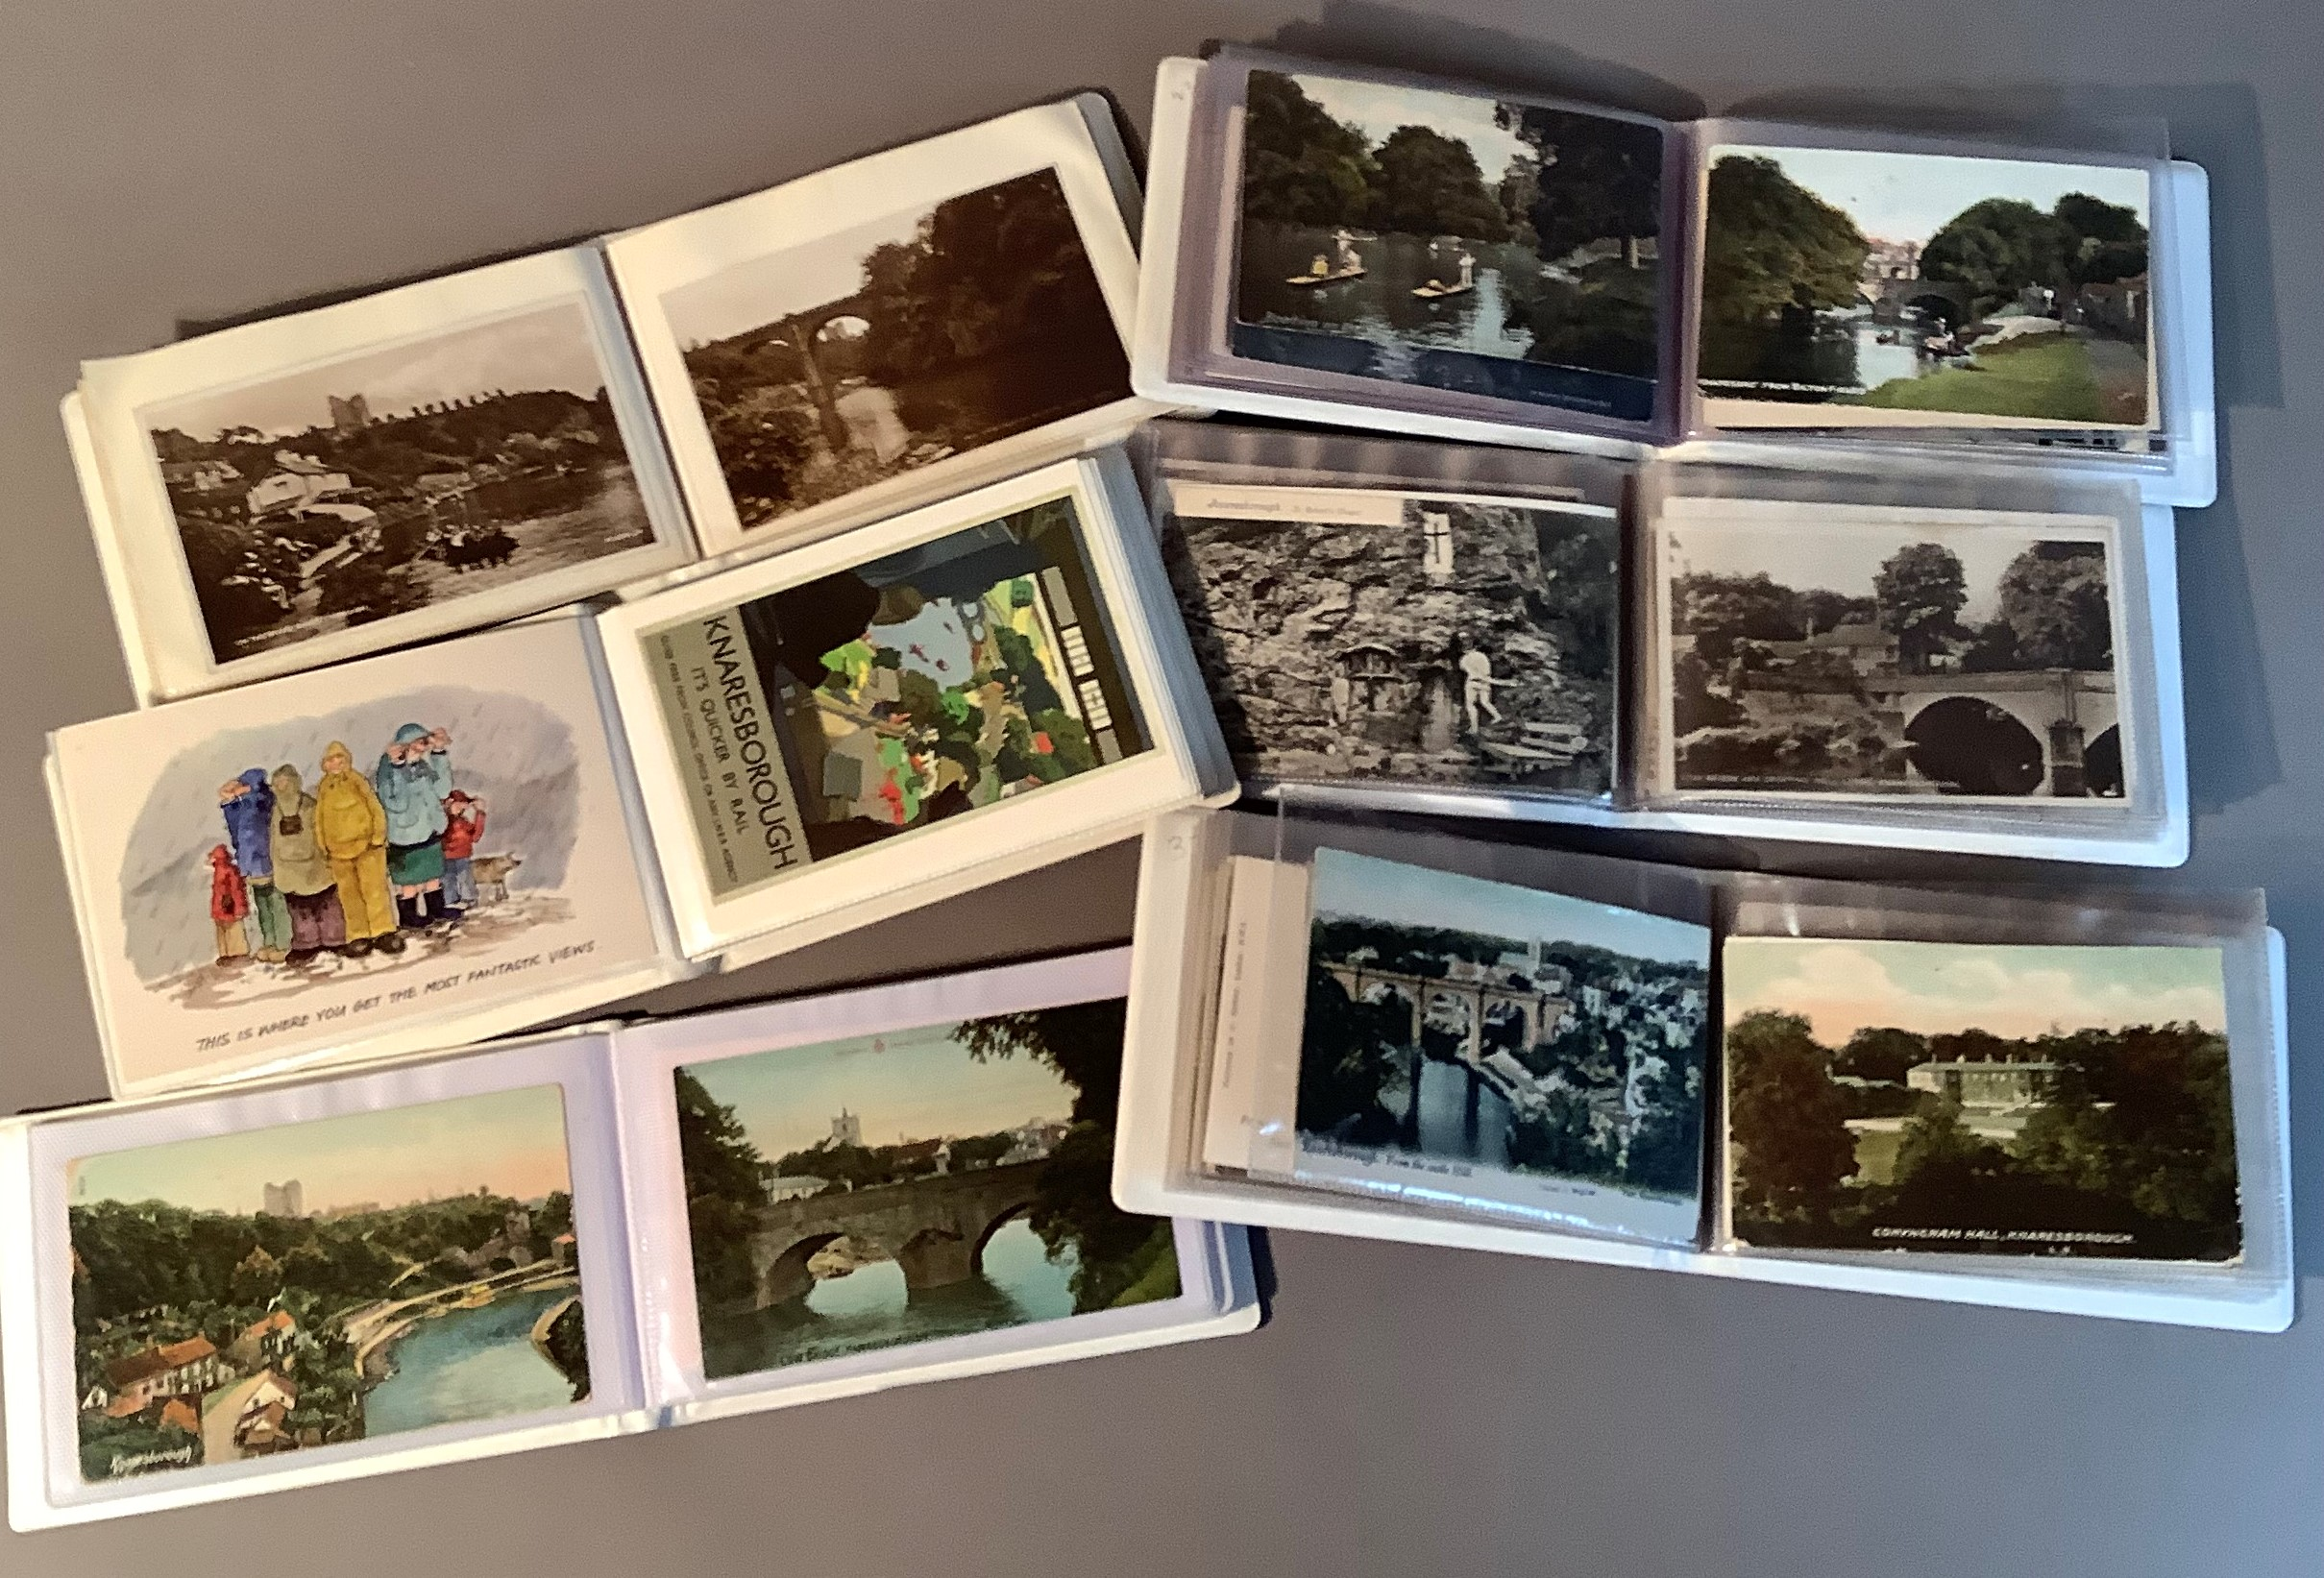 Six albums, local interest, Knaresborough, early to mid 20th century, typical views of the area also